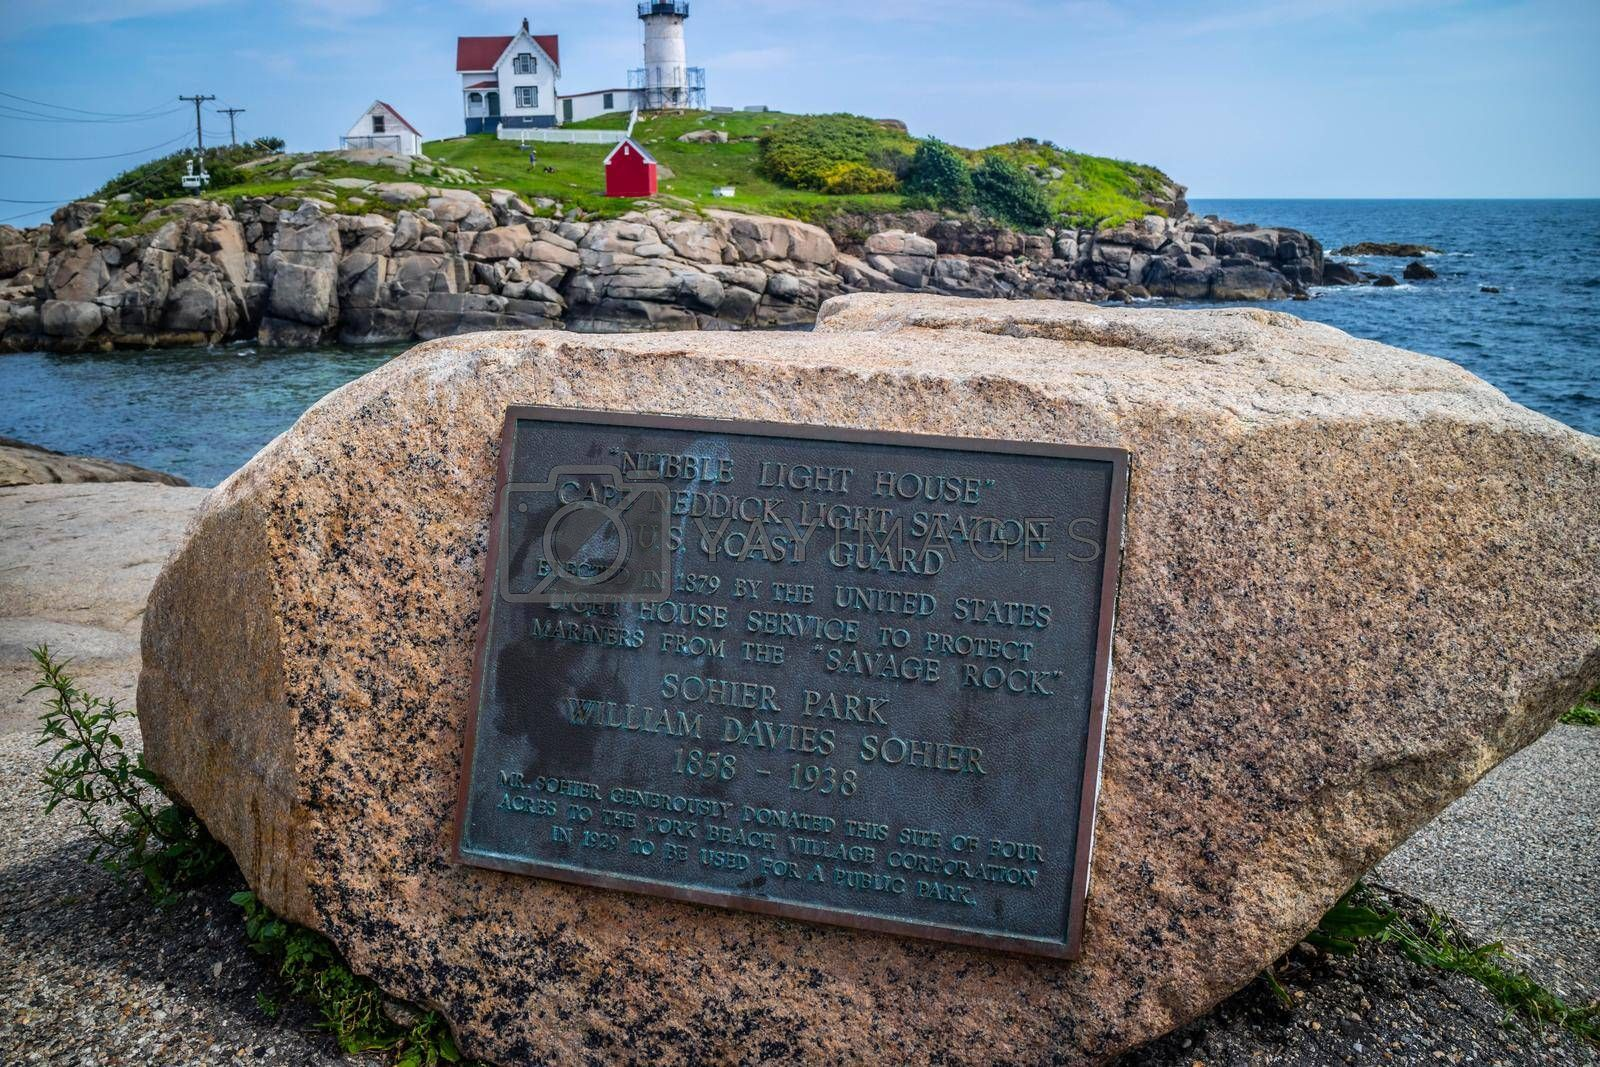 Royalty free image of York, ME, USA - August 25, 2018: The Nubble Light stone marker by cherialguire